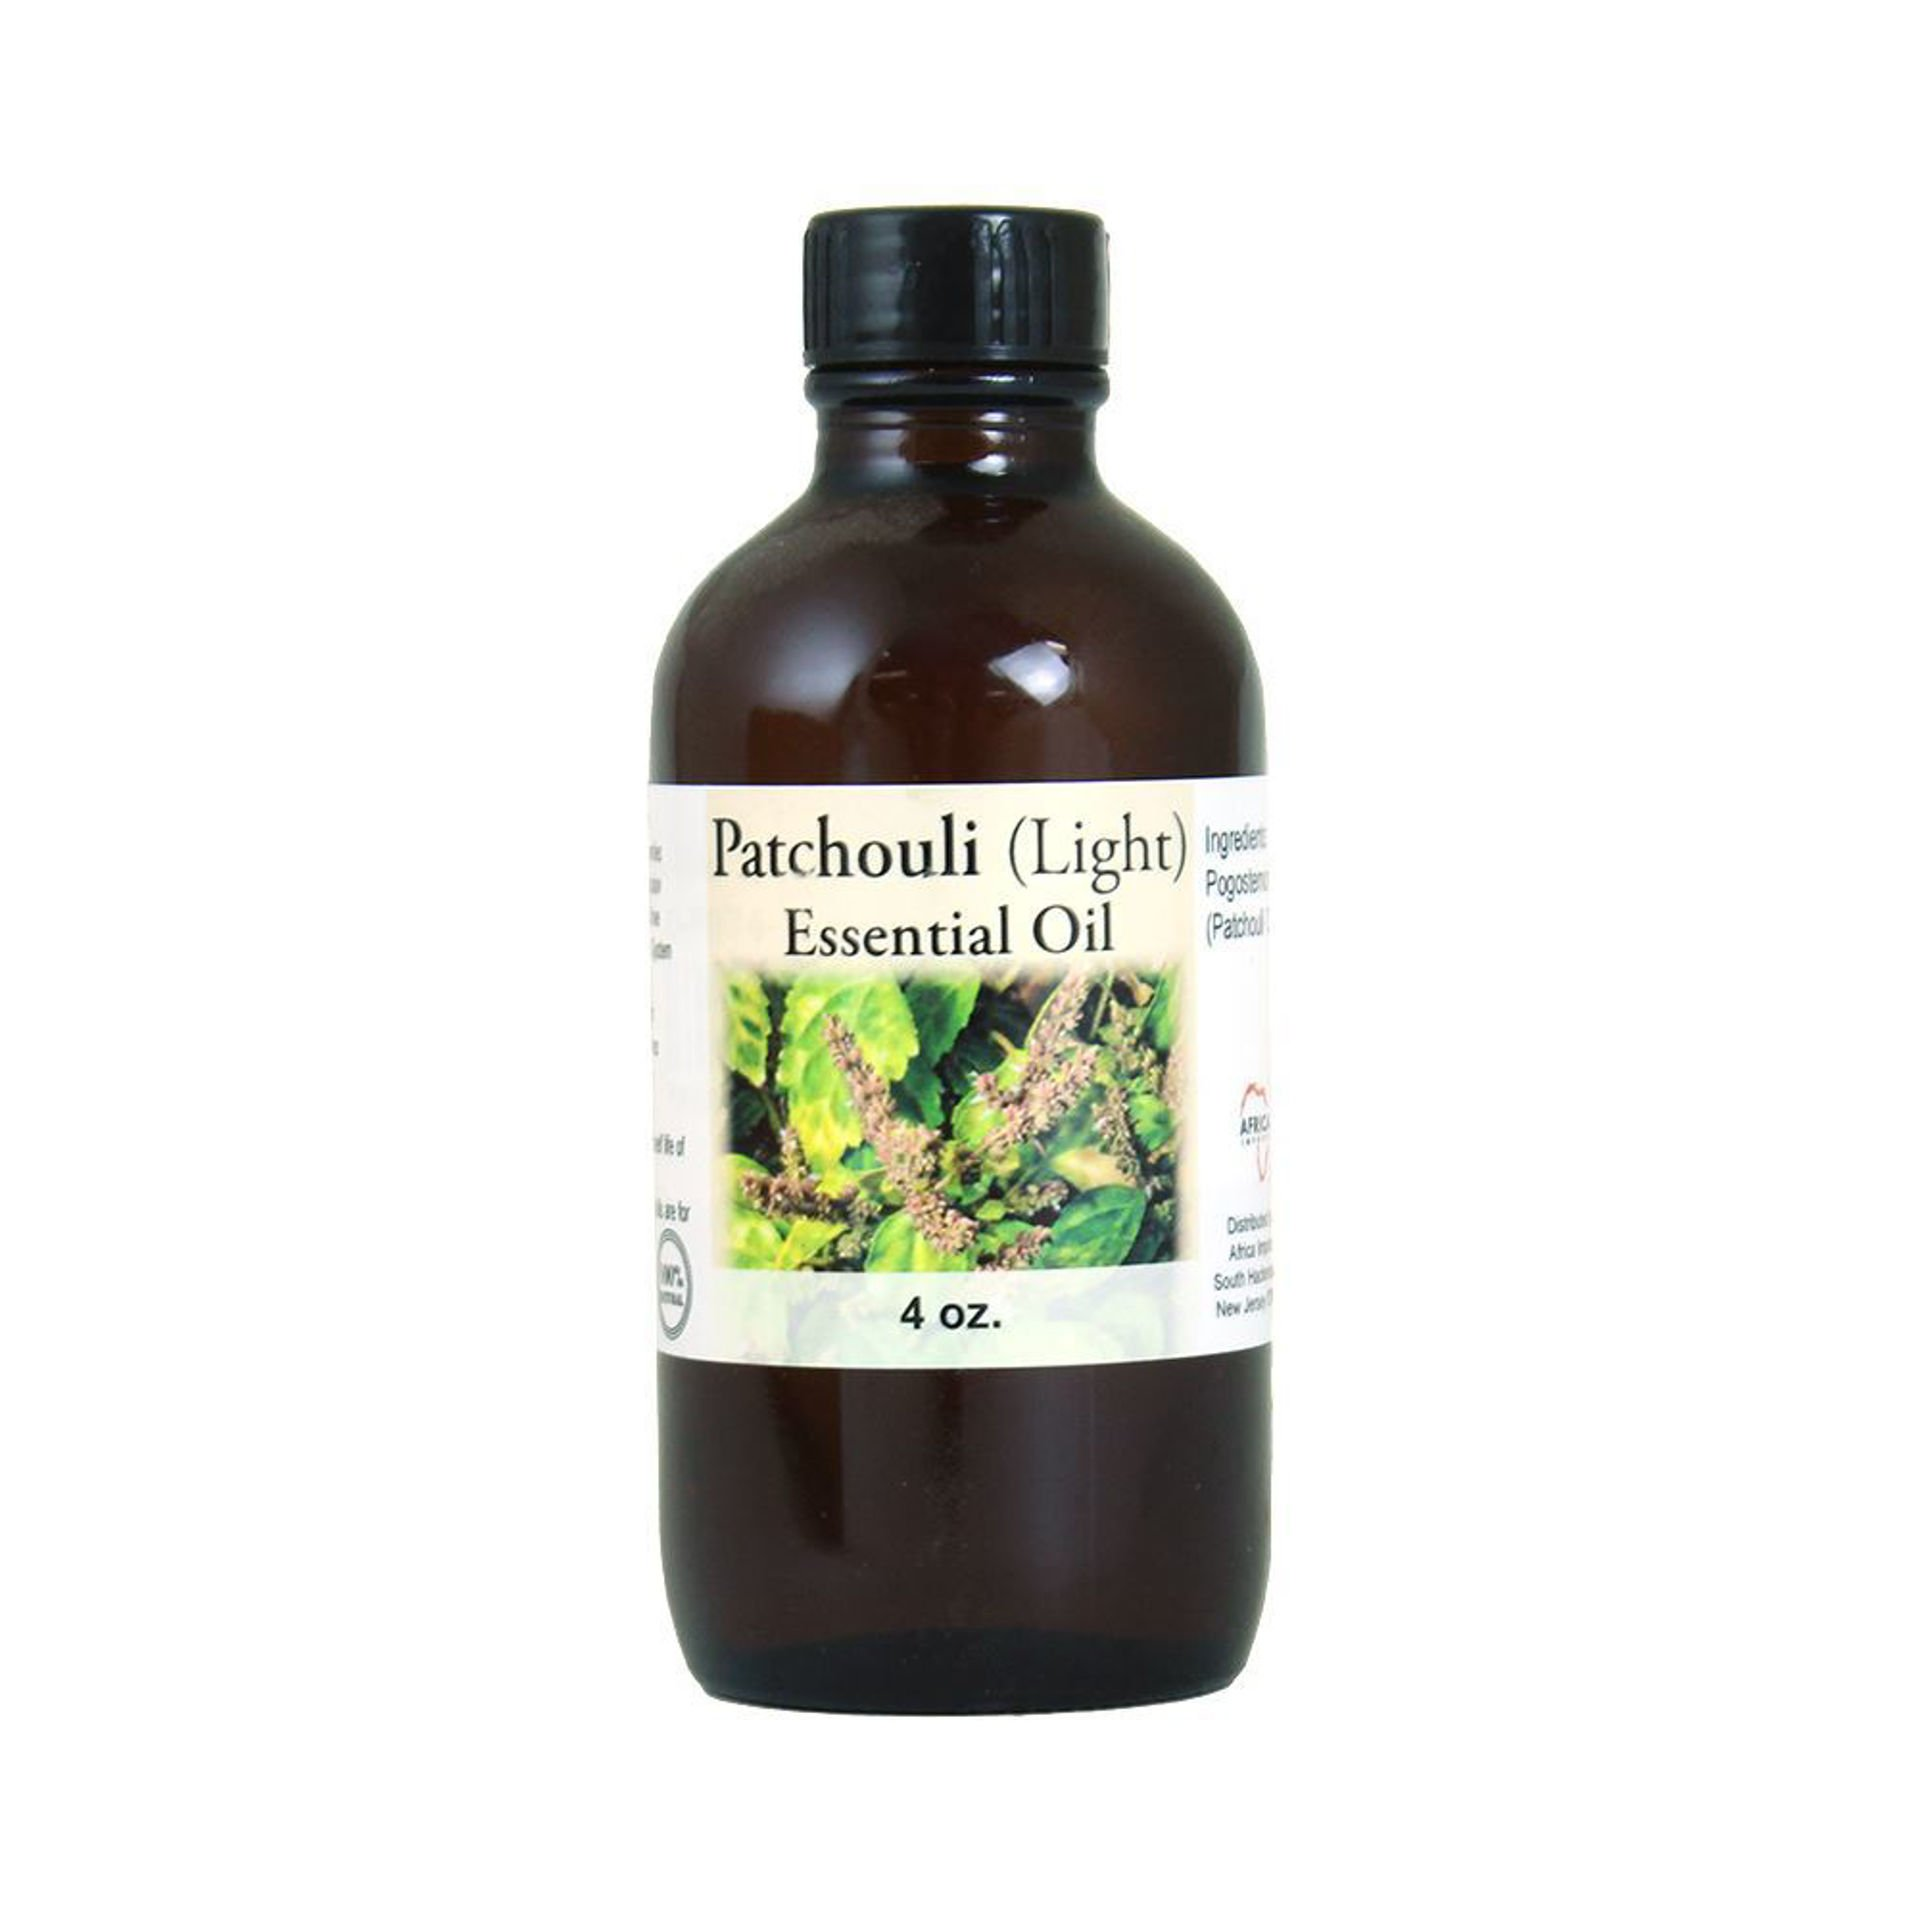 Picture of Patchouli (Light) Essential Oil - 4 oz.